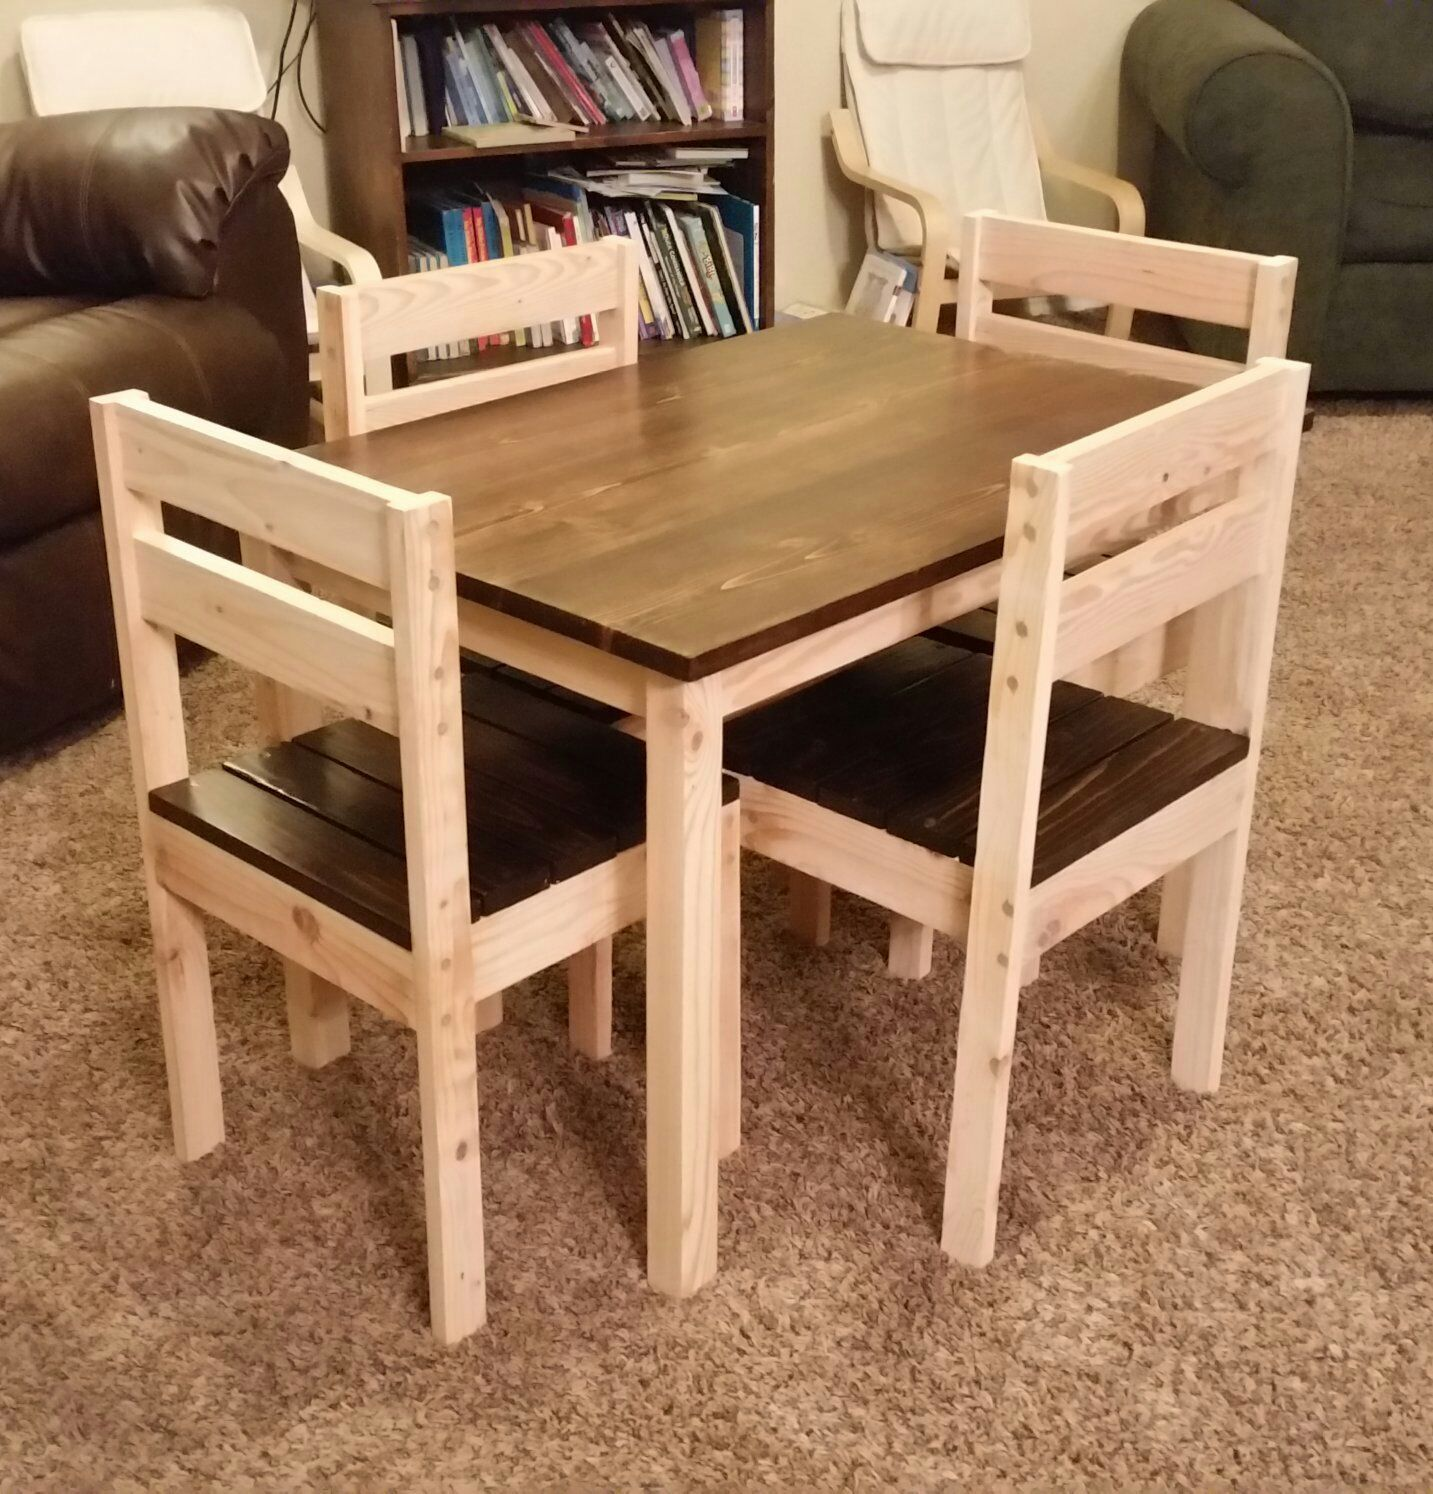 Kids table and chairs | Do It Yourself Home Projects from ...